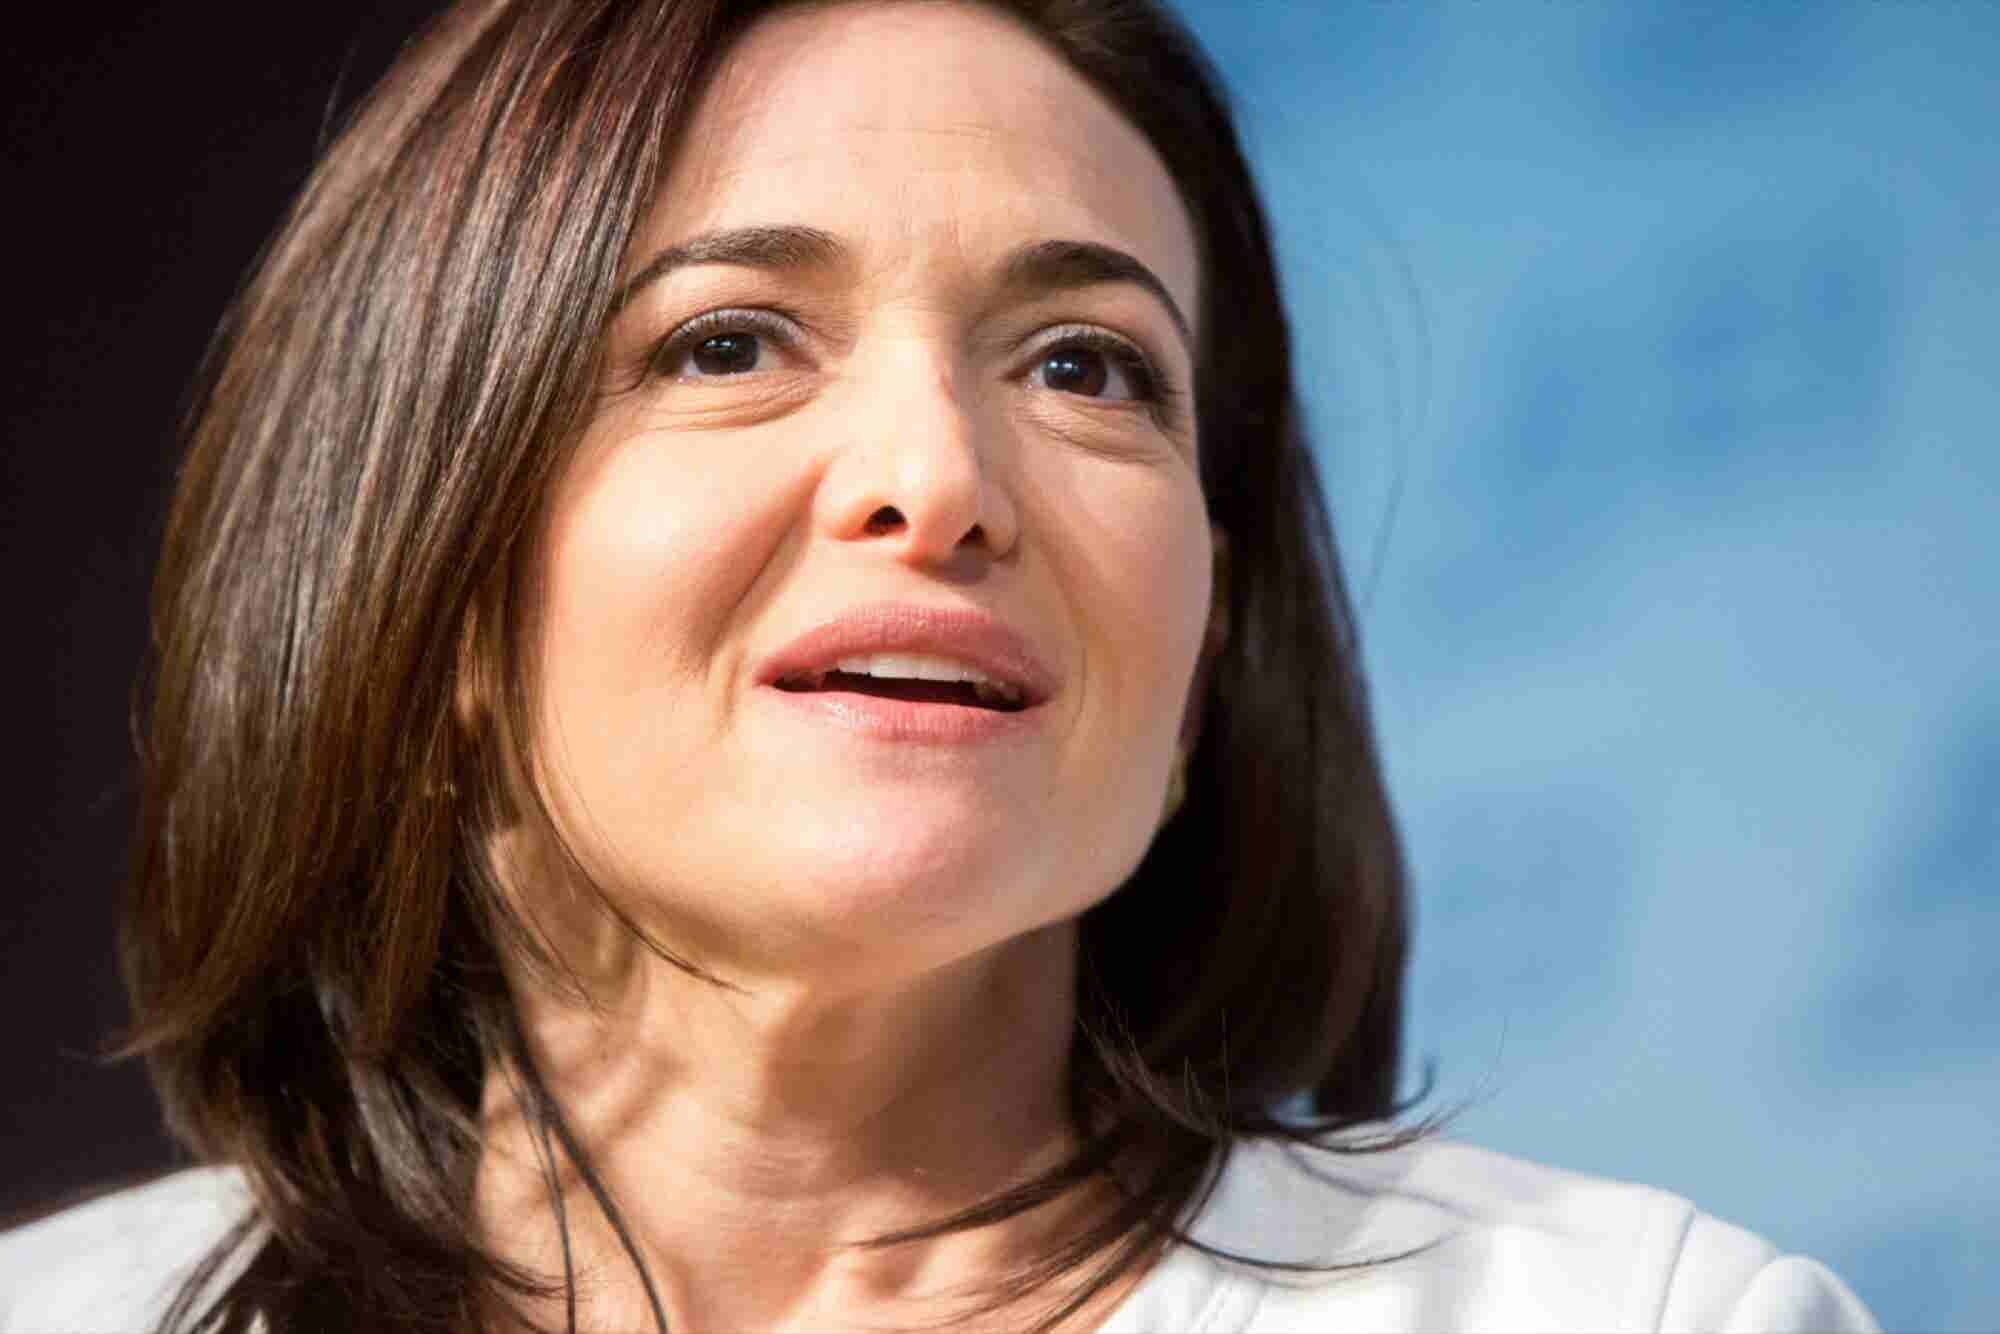 Sheryl Sandberg, Lean In 2.0 and Corporate Gender Bias